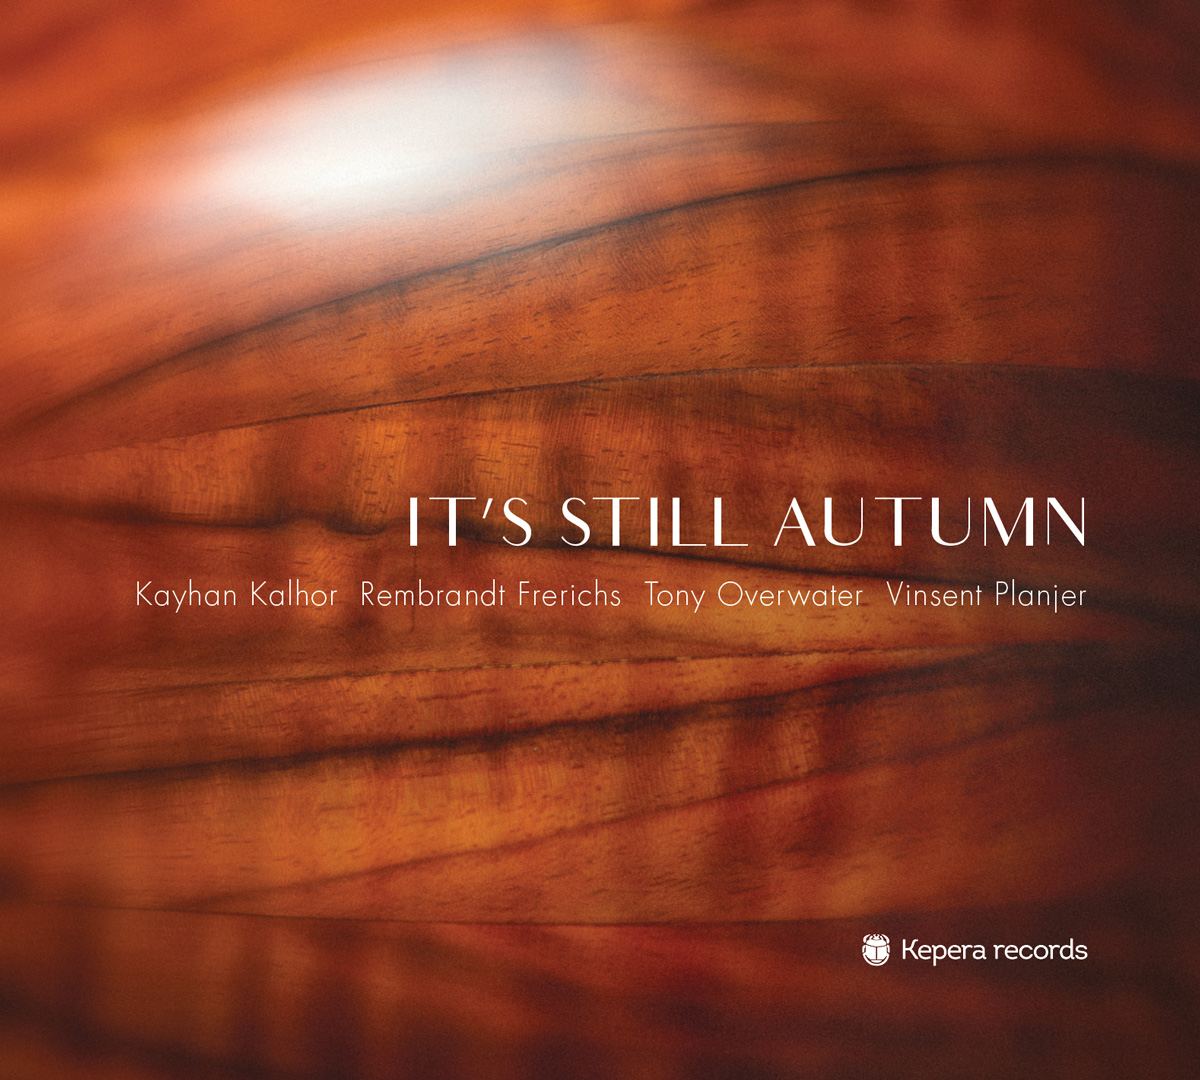 Kalhor, Frerichs, Overwater, Planjer - It's still Autumn